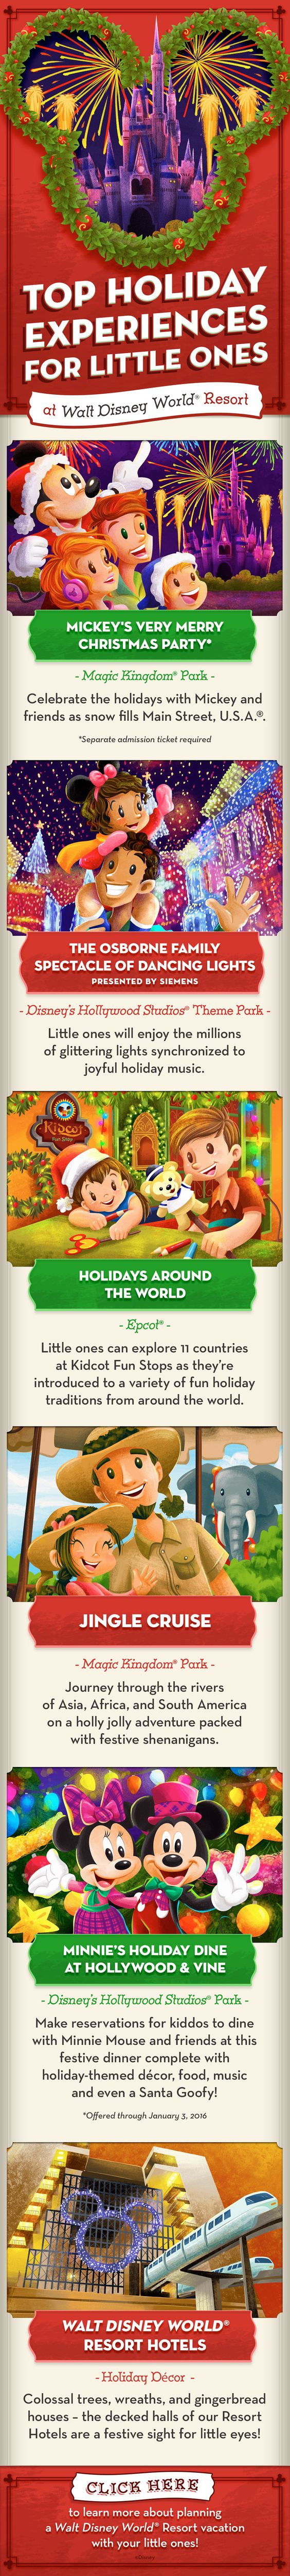 Learn more about fun and unique Holiday experiences in 2015 for you and your little ones on your Walt Disney World vacation! From Mickey's Very Merry Christmas Party to holiday decor at Walt Disney World Resort hotels, you're sure to have a merry holiday visit!